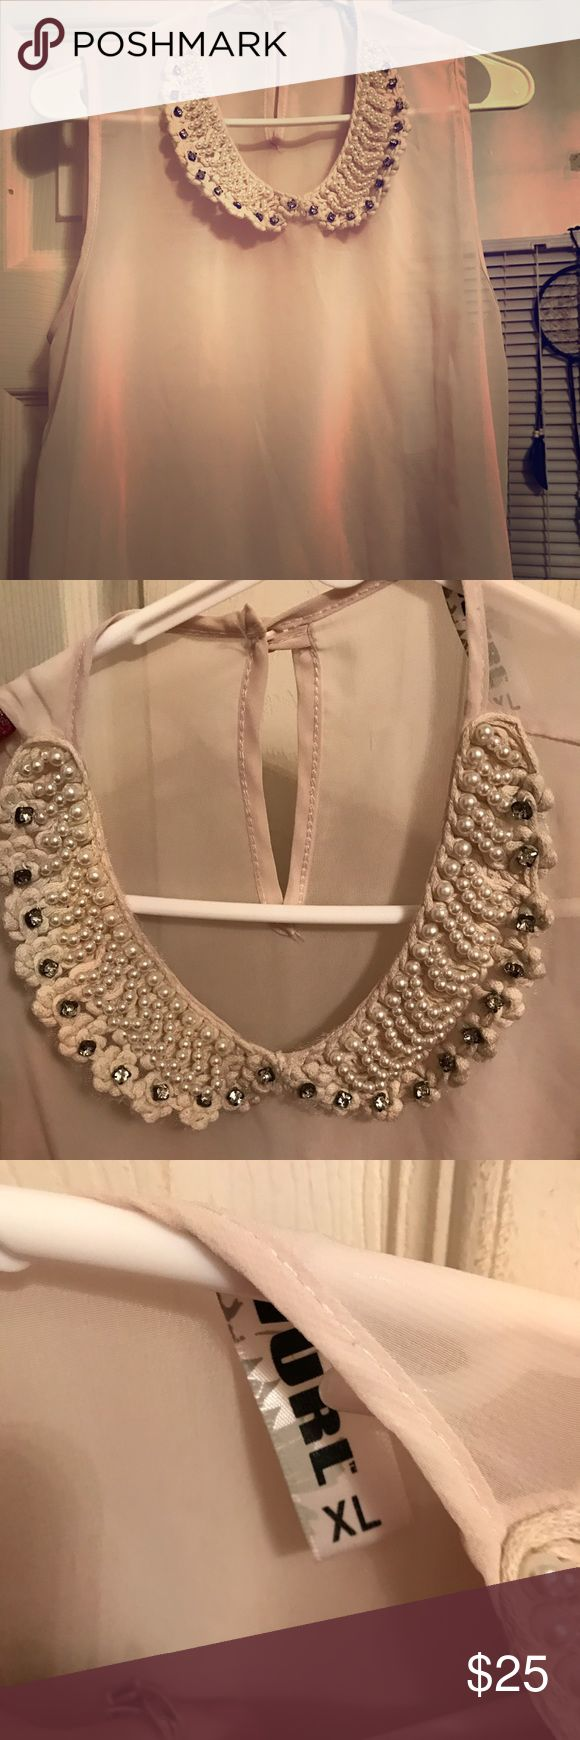 Shear sleeveless top! Elegant cream sleeveless top with pretty neck detail- rhinestones and faux pearls. Pretty and feminine. Tops Blouses